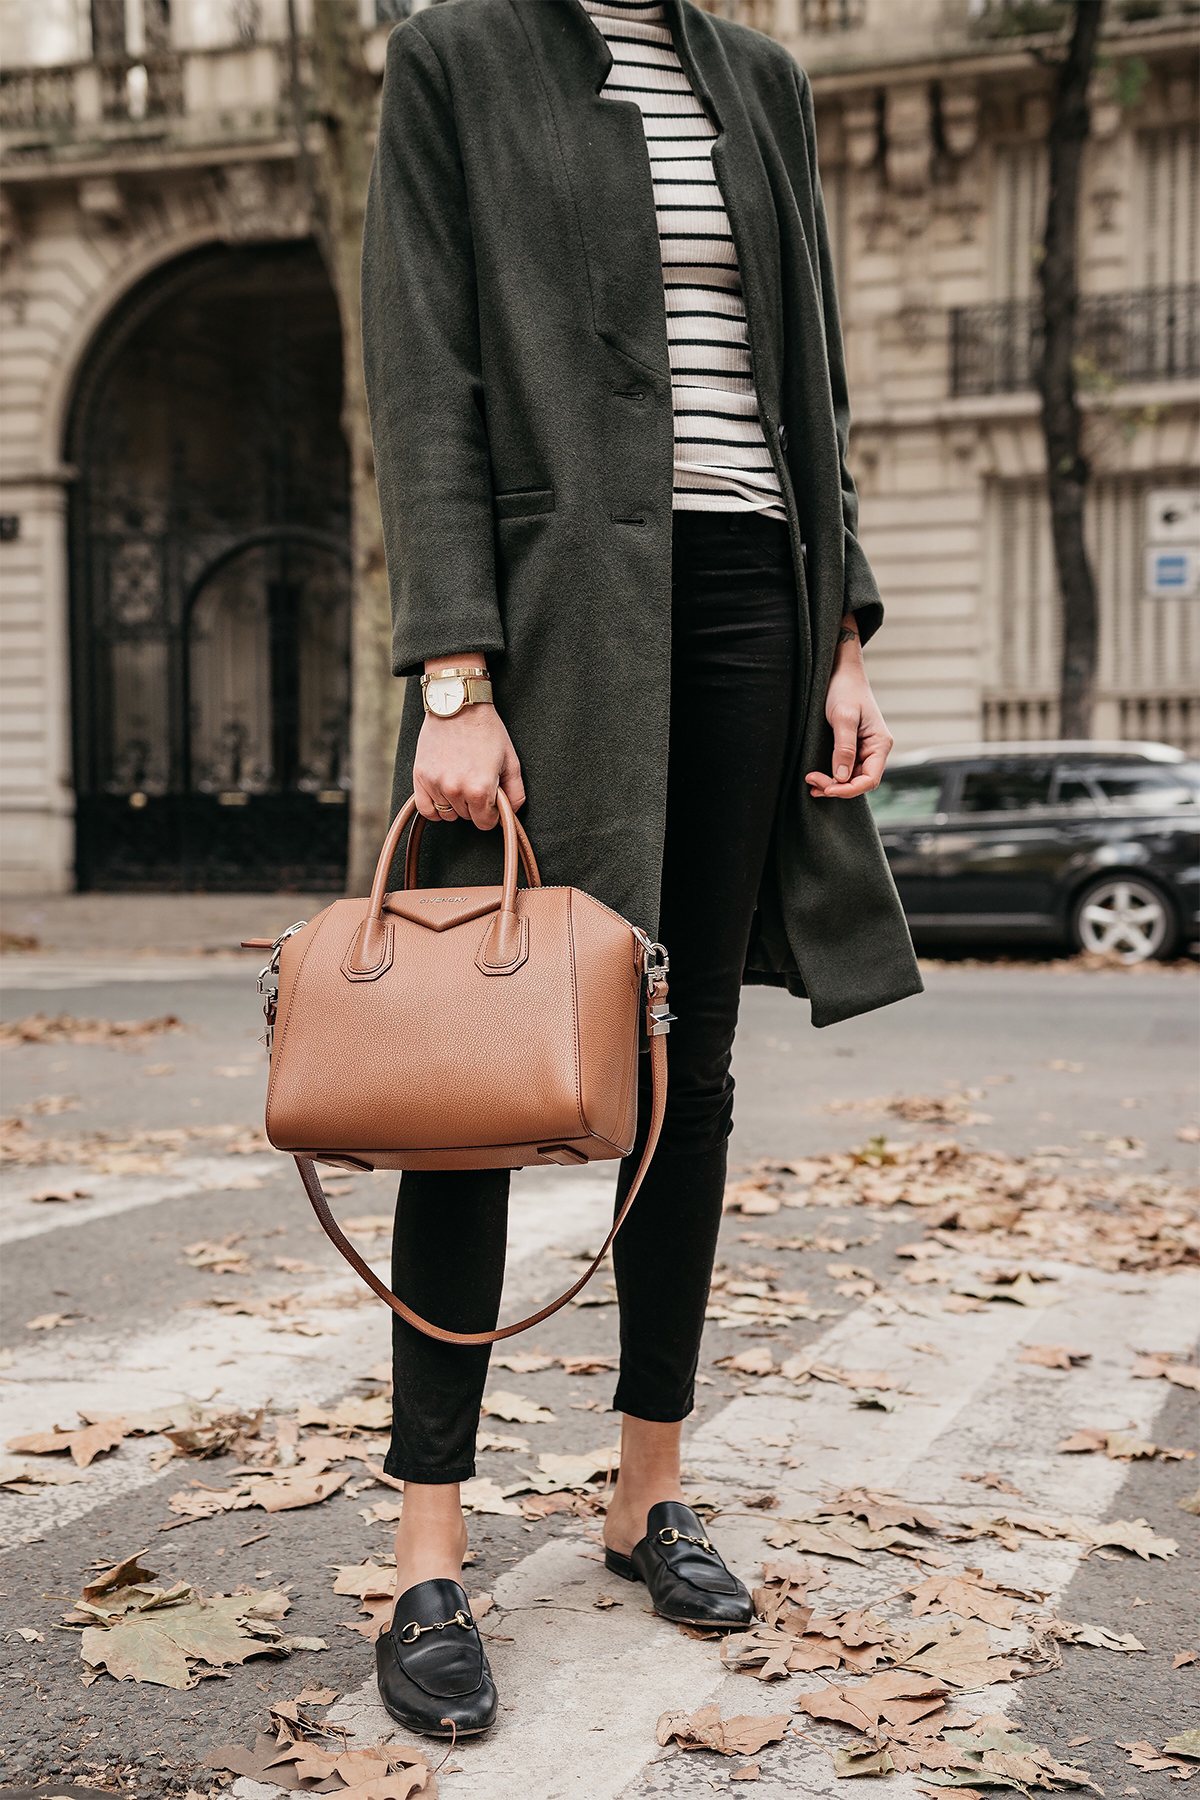 Eiffel Tower Paris France Green Wool Coat Black White Stripe Turtleneck Black Skinny Jeans Givency Antigona Cognac Satchel Gucci Mules Fashion Jackson Dallas Blogger Fashion Blogger Street Style